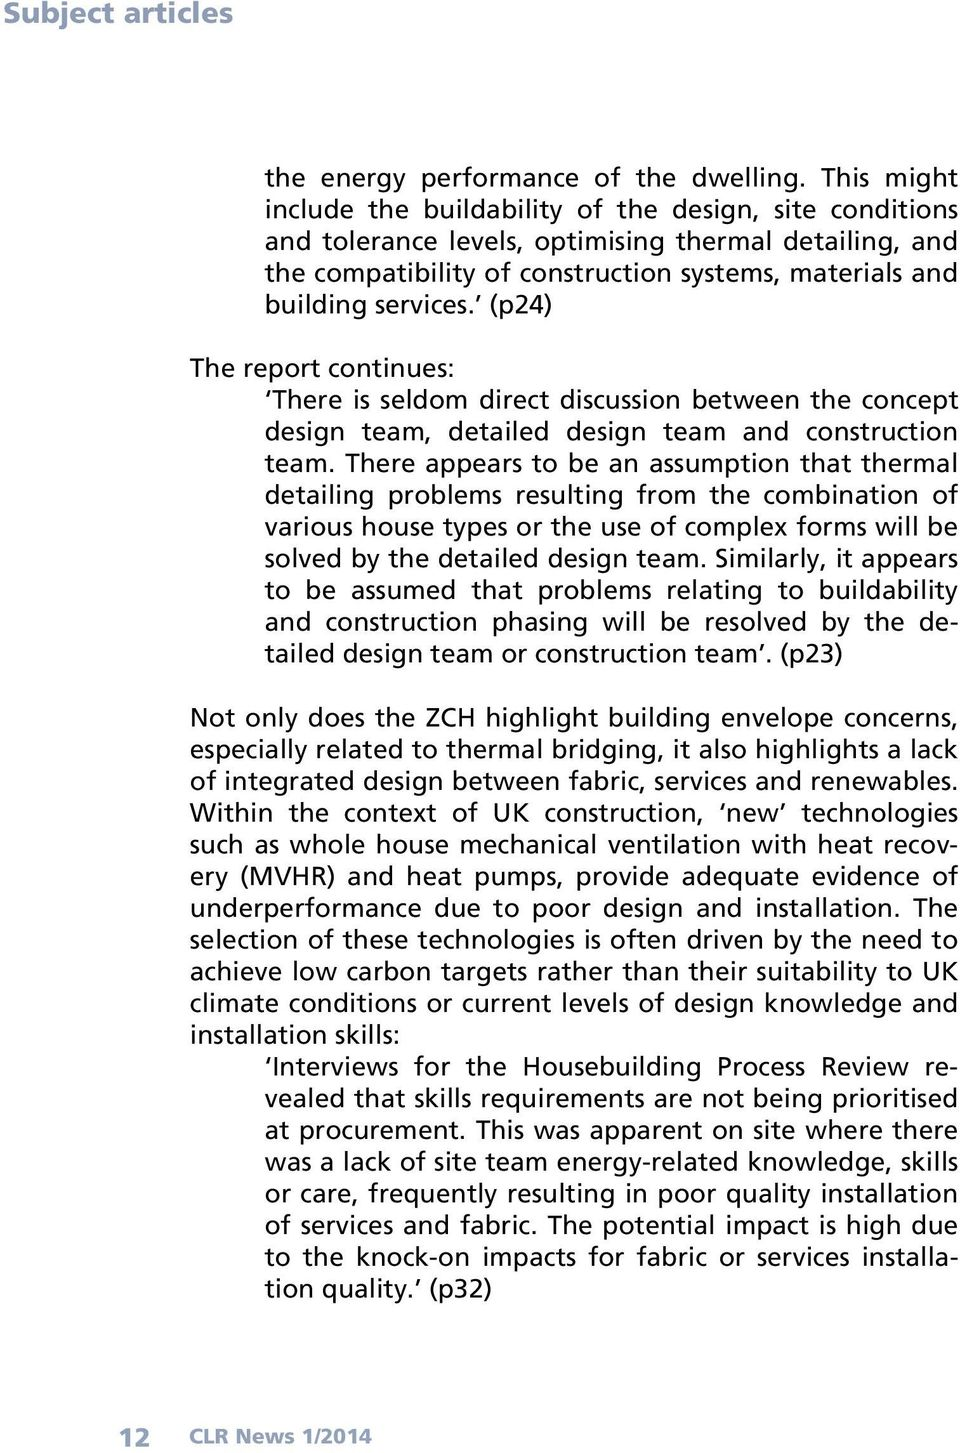 (p24) The report continues: There is seldom direct discussion between the concept design team, detailed design team and construction team.